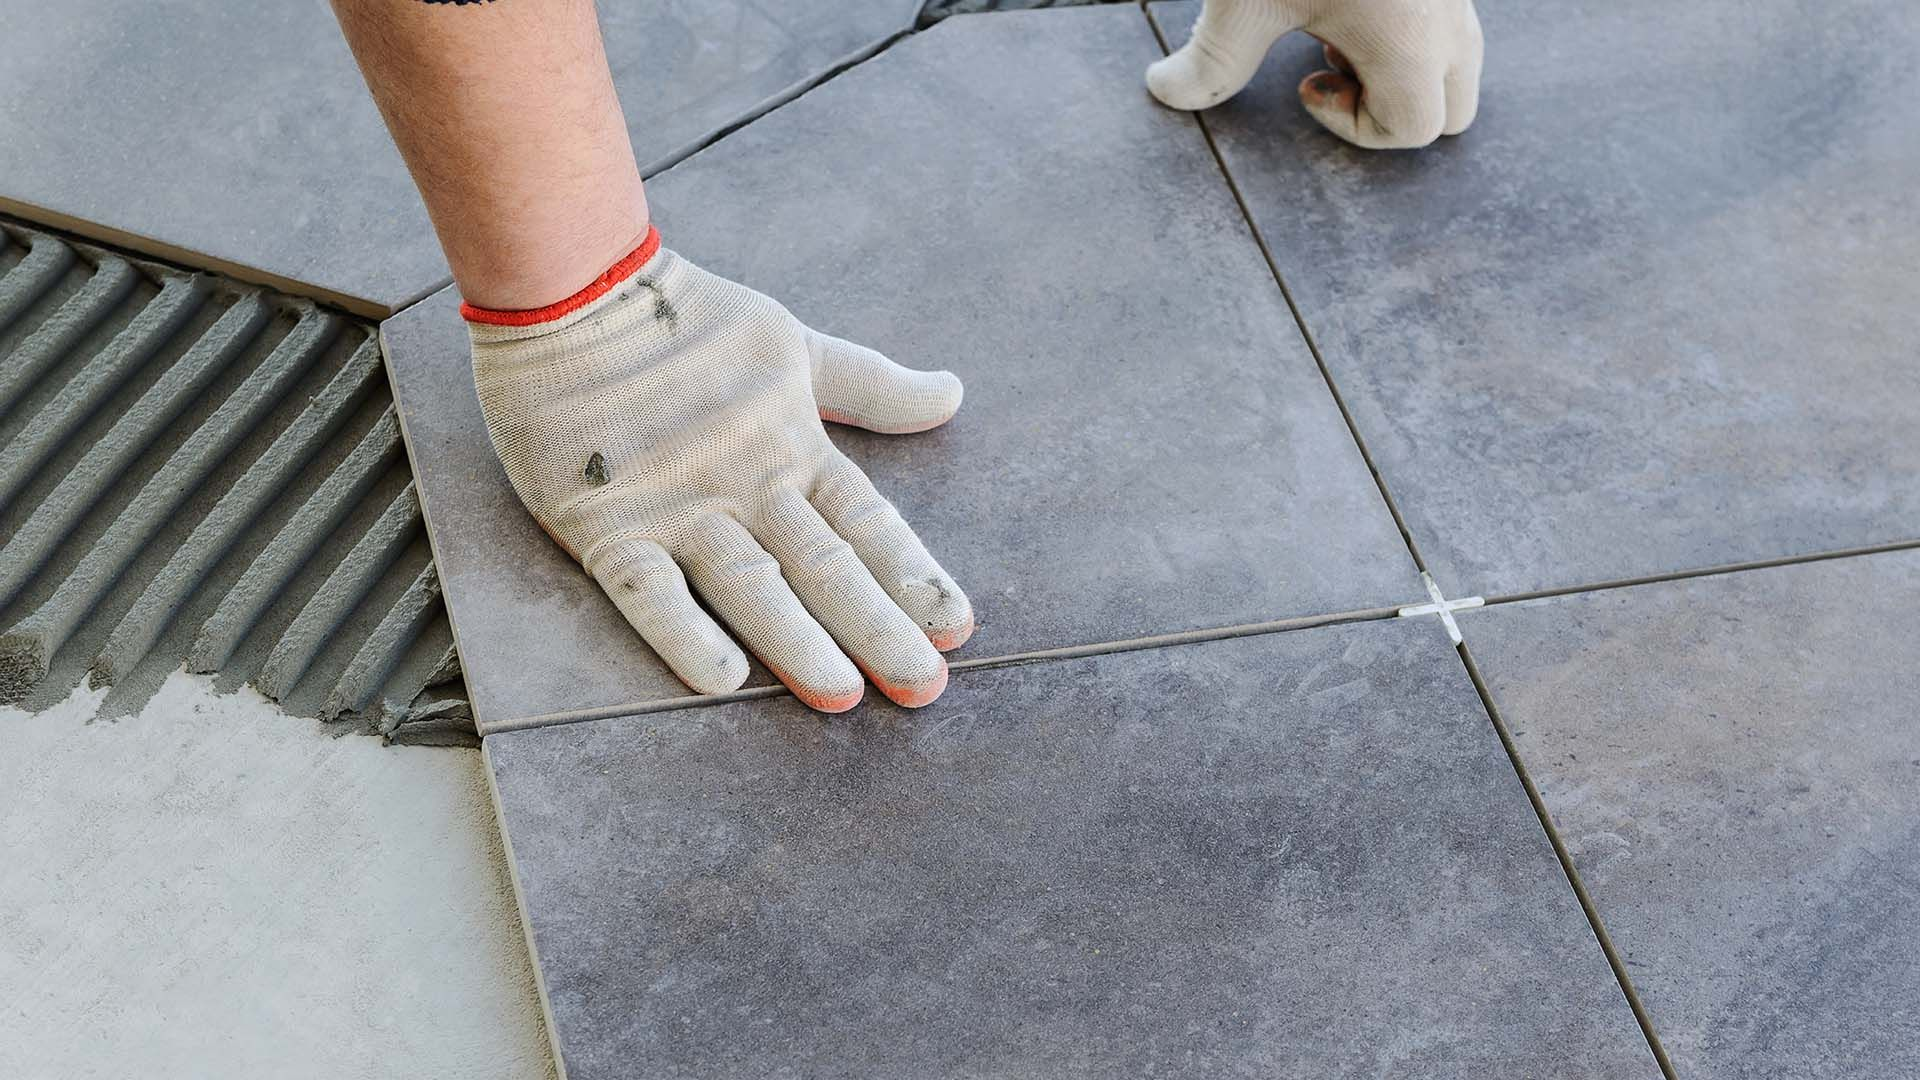 Laying Tile On Uneven Floors In 4 Easy Steps Weber Uk